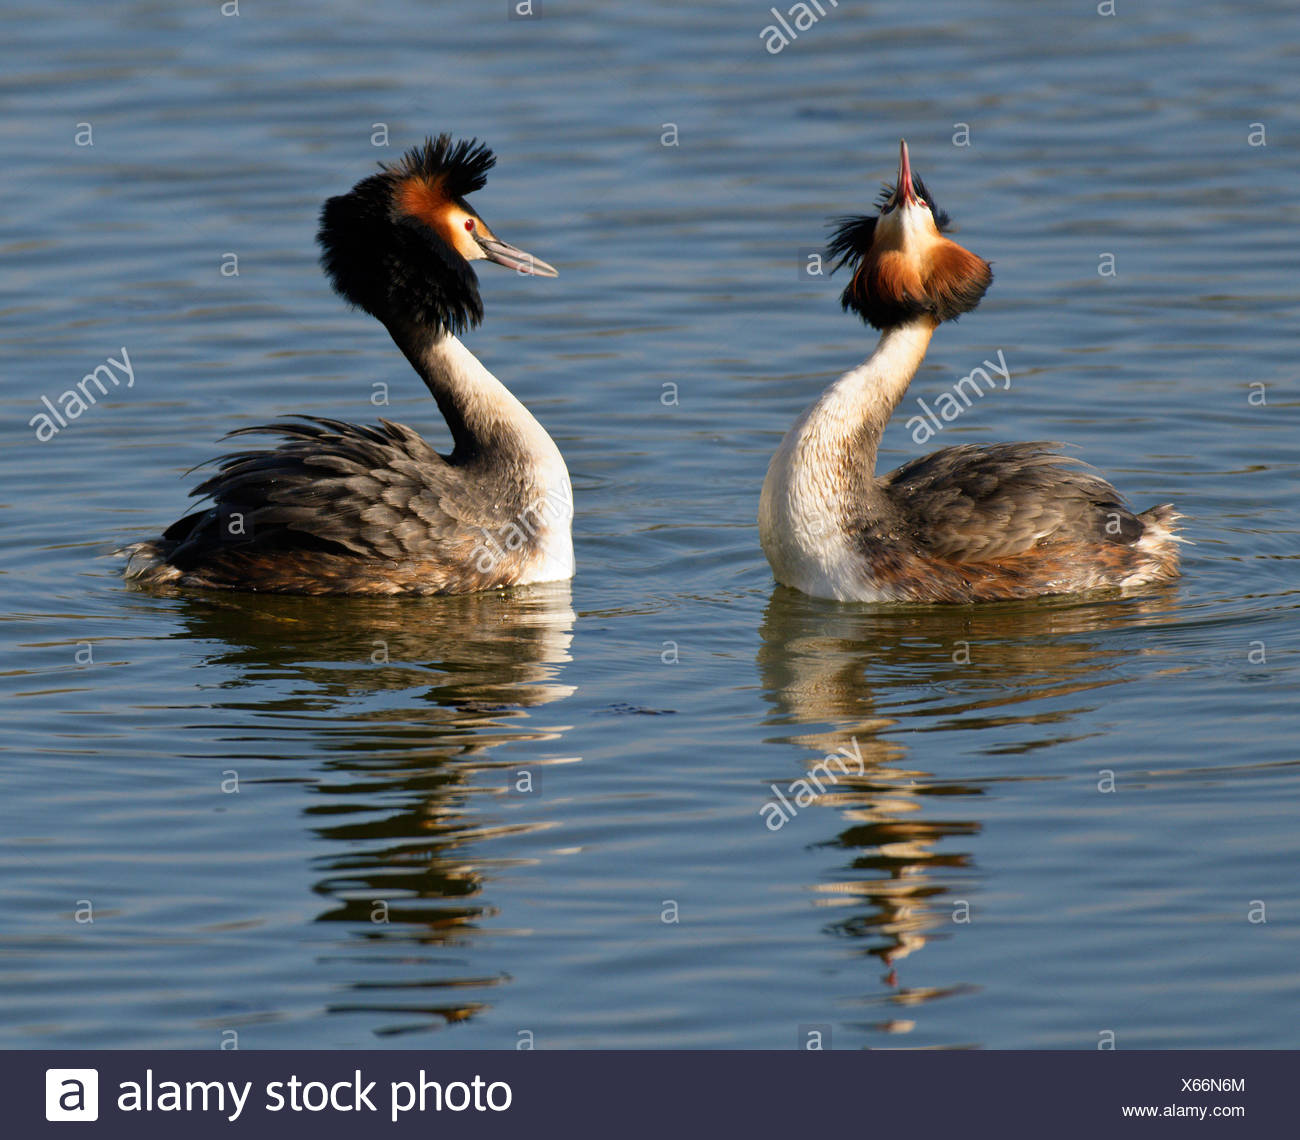 Pair of Great Crested Grebes (Podiceps cristatus) displaying - Stock Image